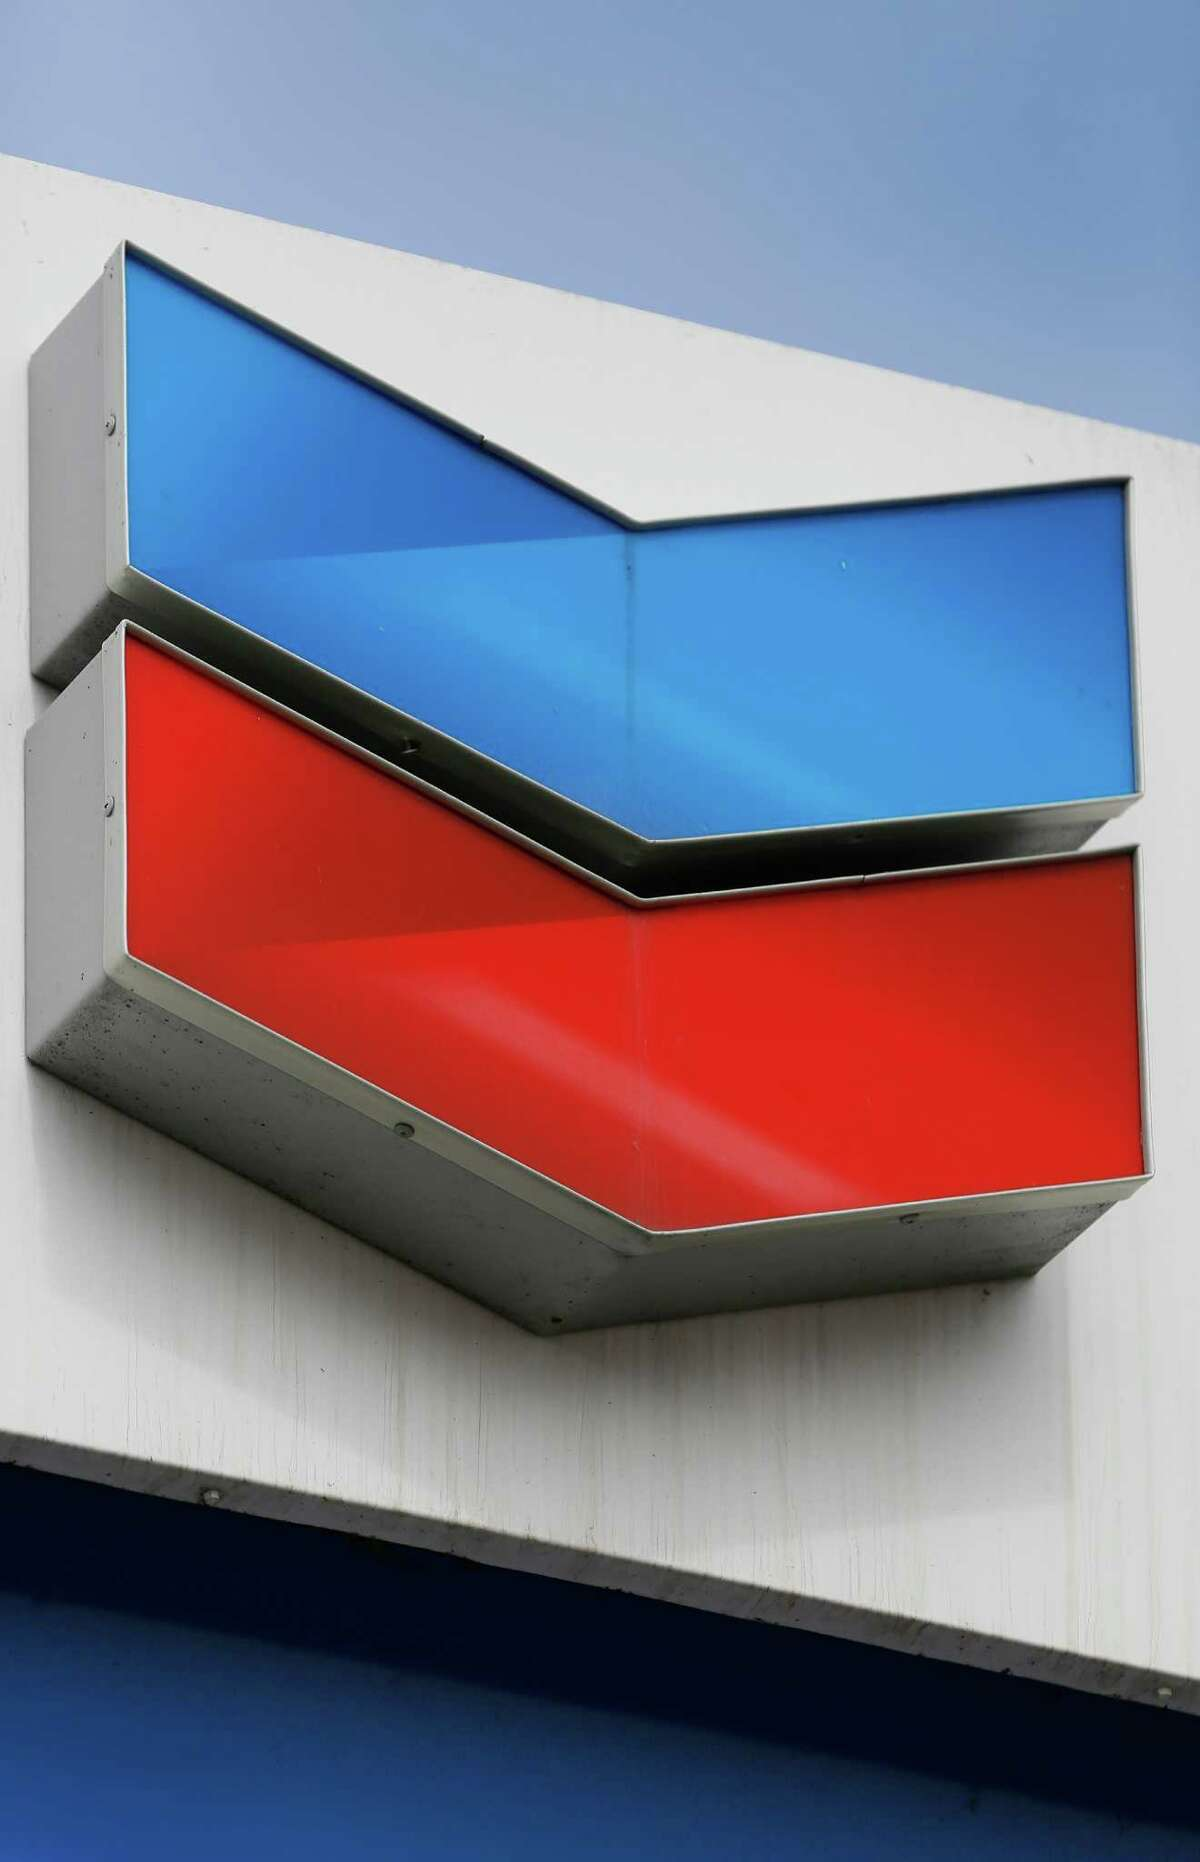 Chevron was ranked 97 on Glassdoor's list of the best places to work among large employers.